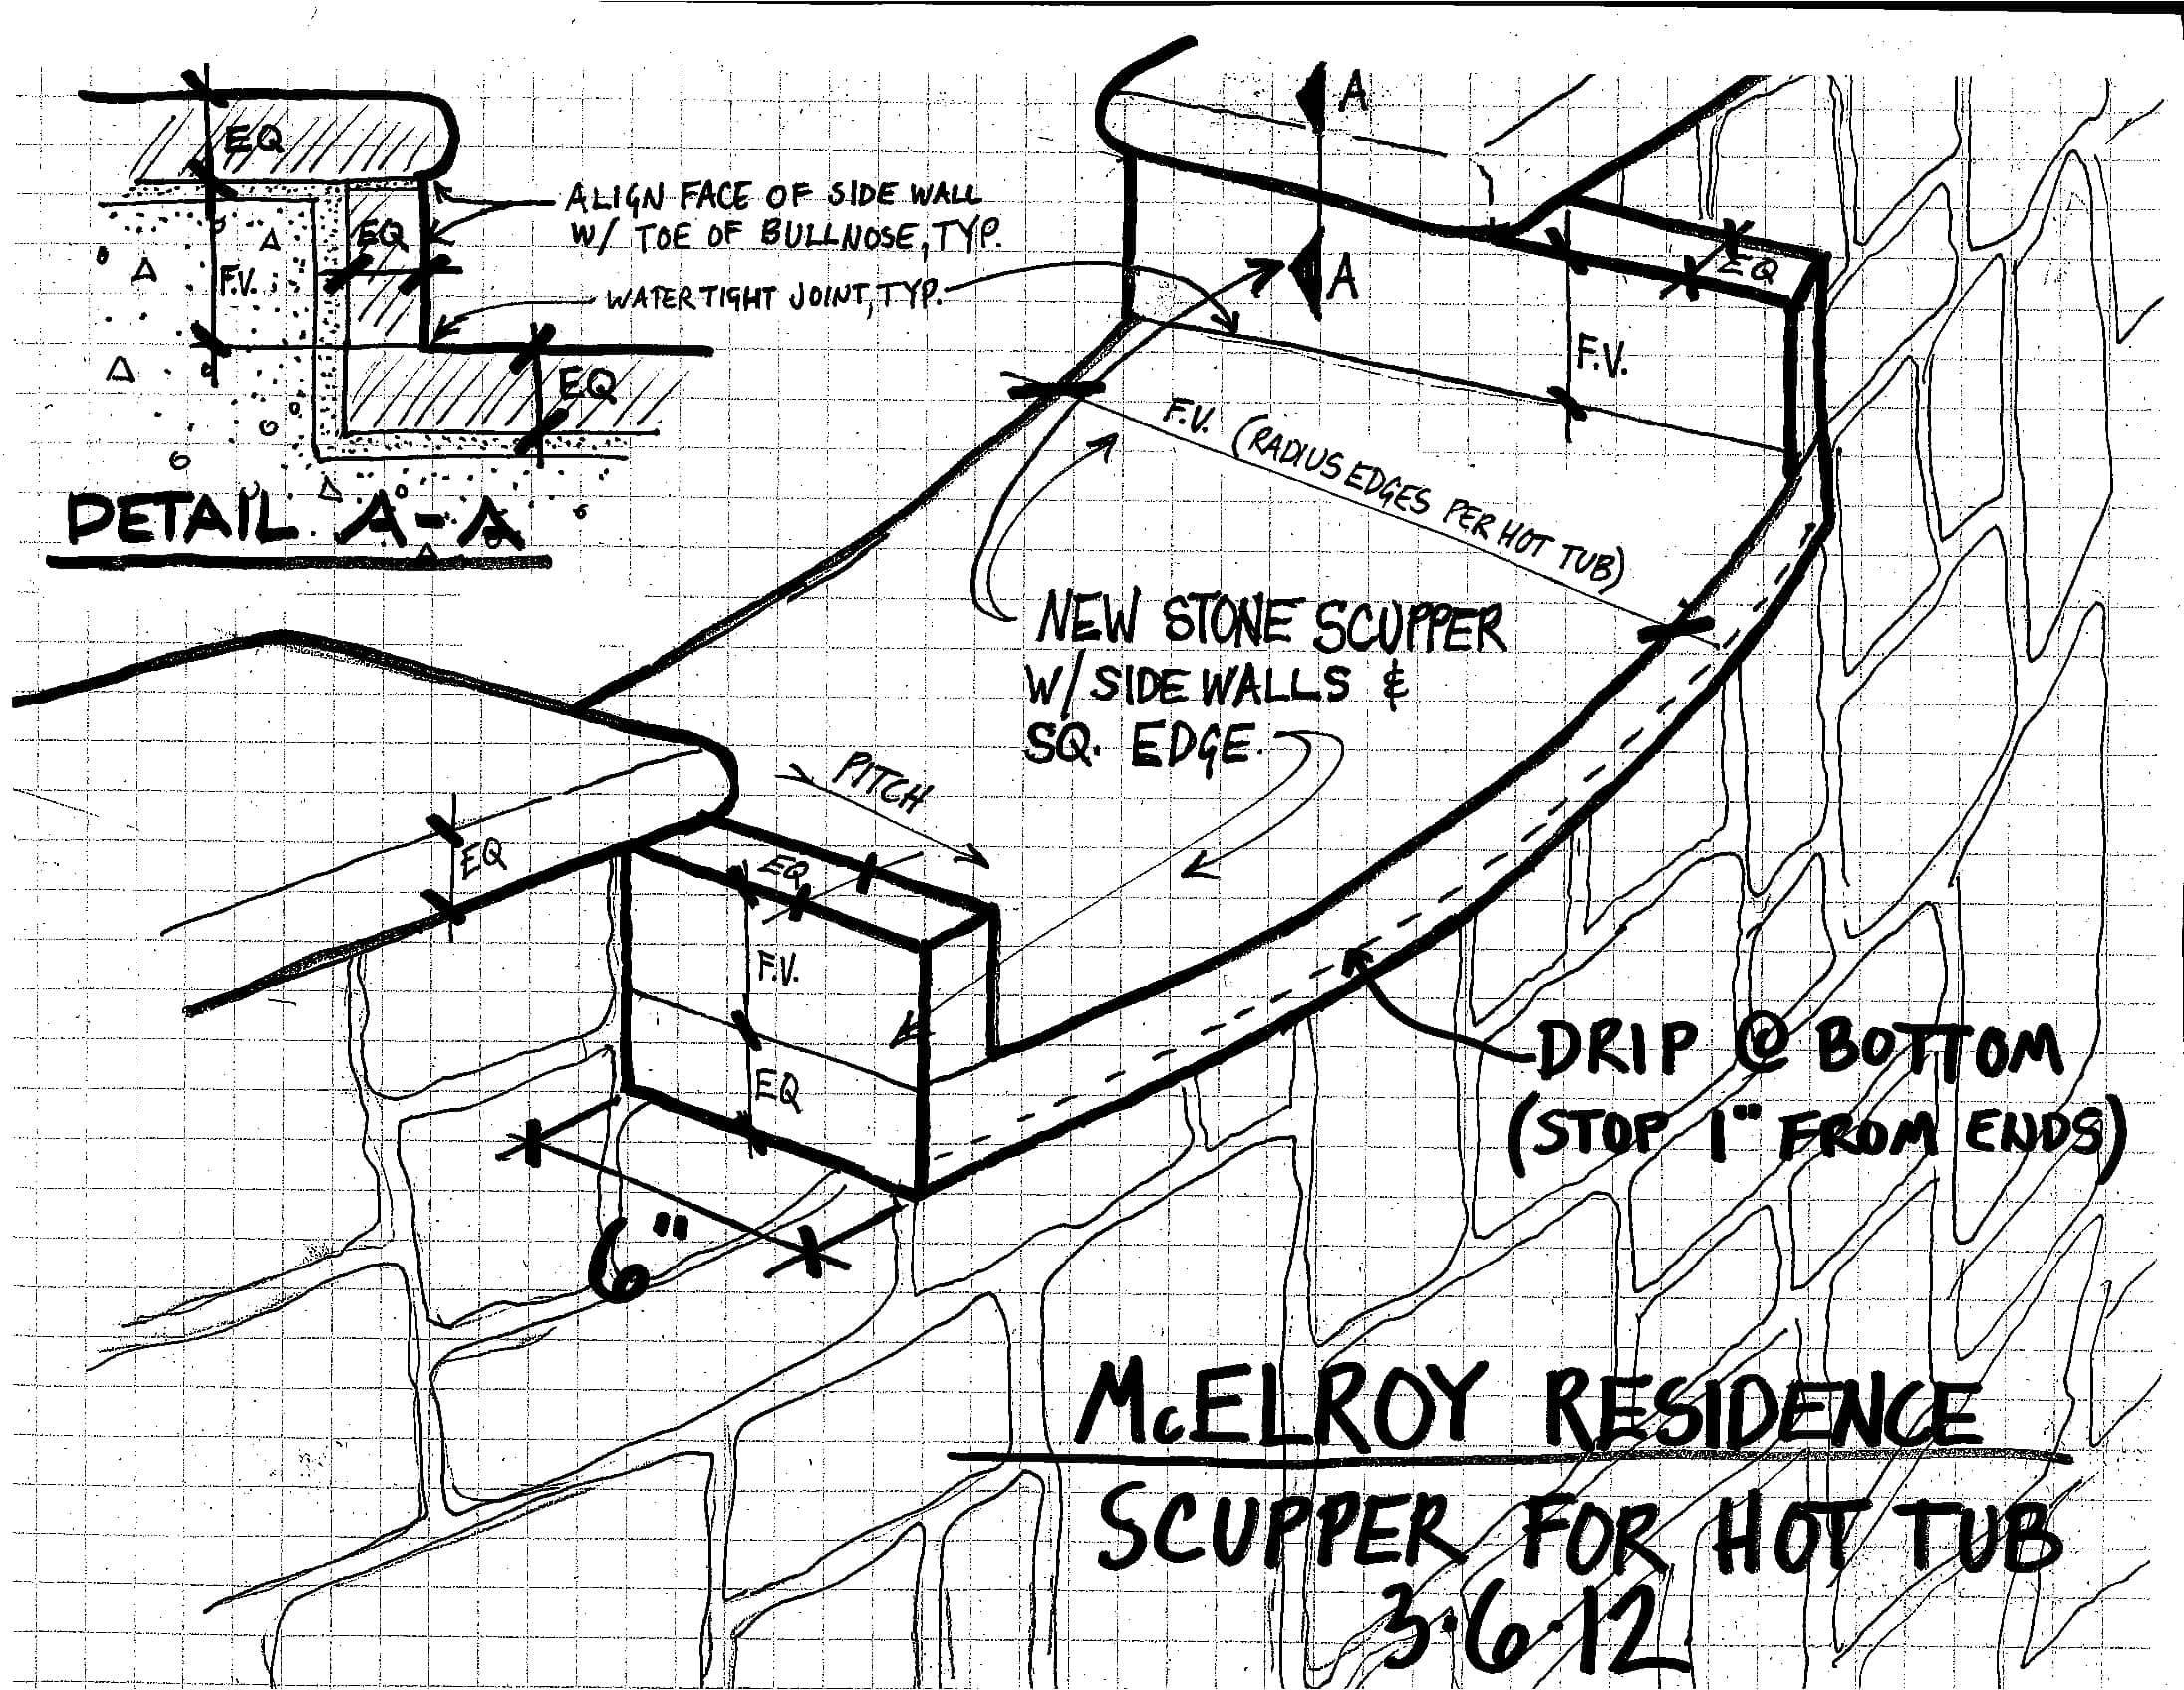 hot-tub-scupper